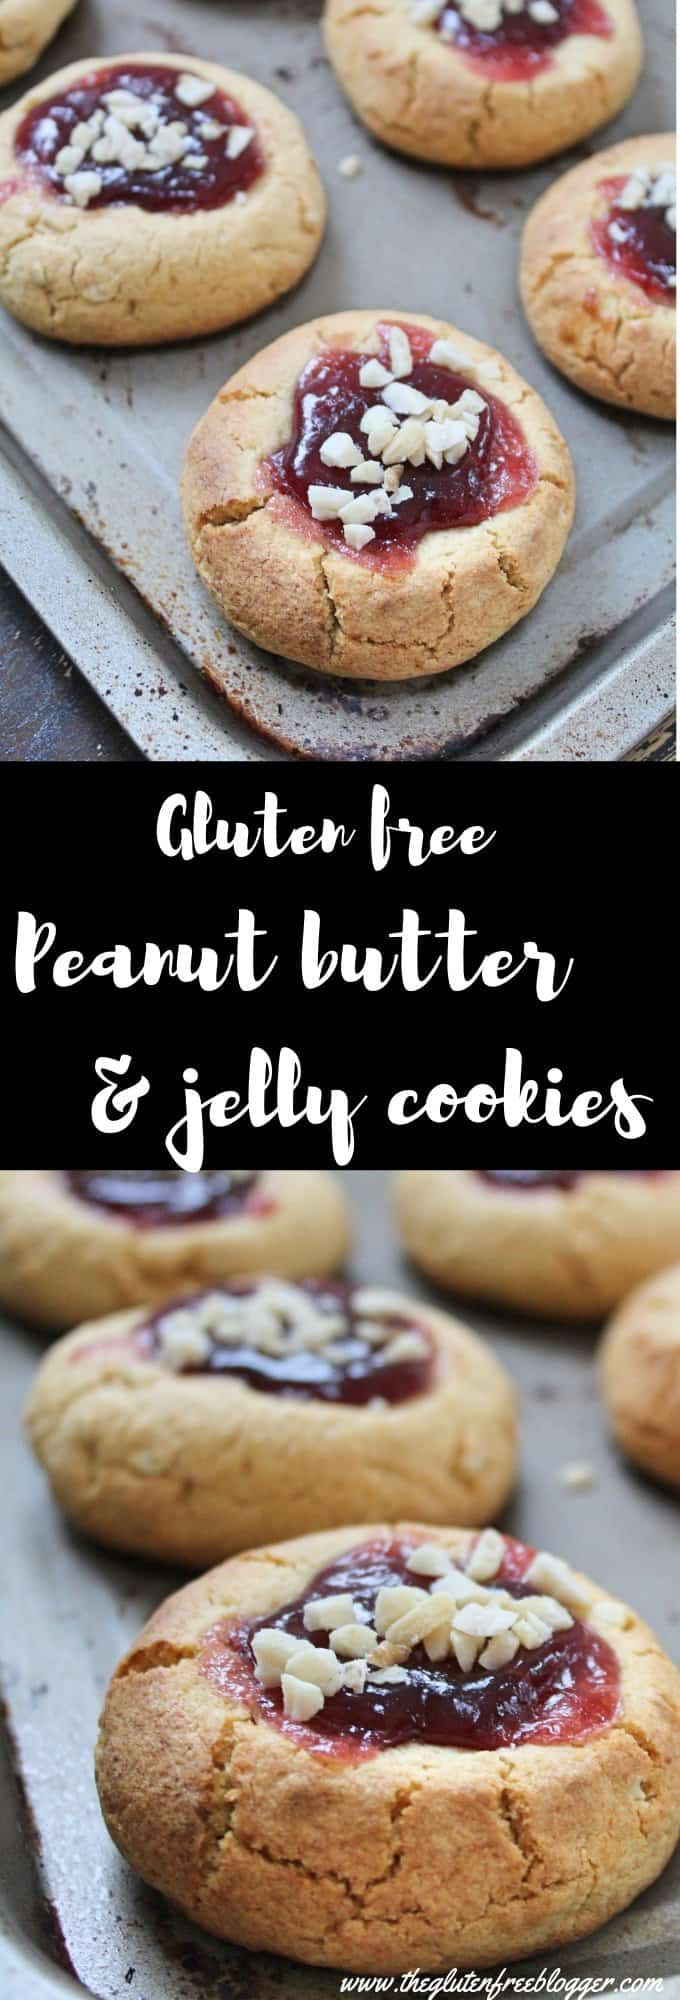 gluten free peanut butter and jelly cookies recipe - thumbprint cookies (1)